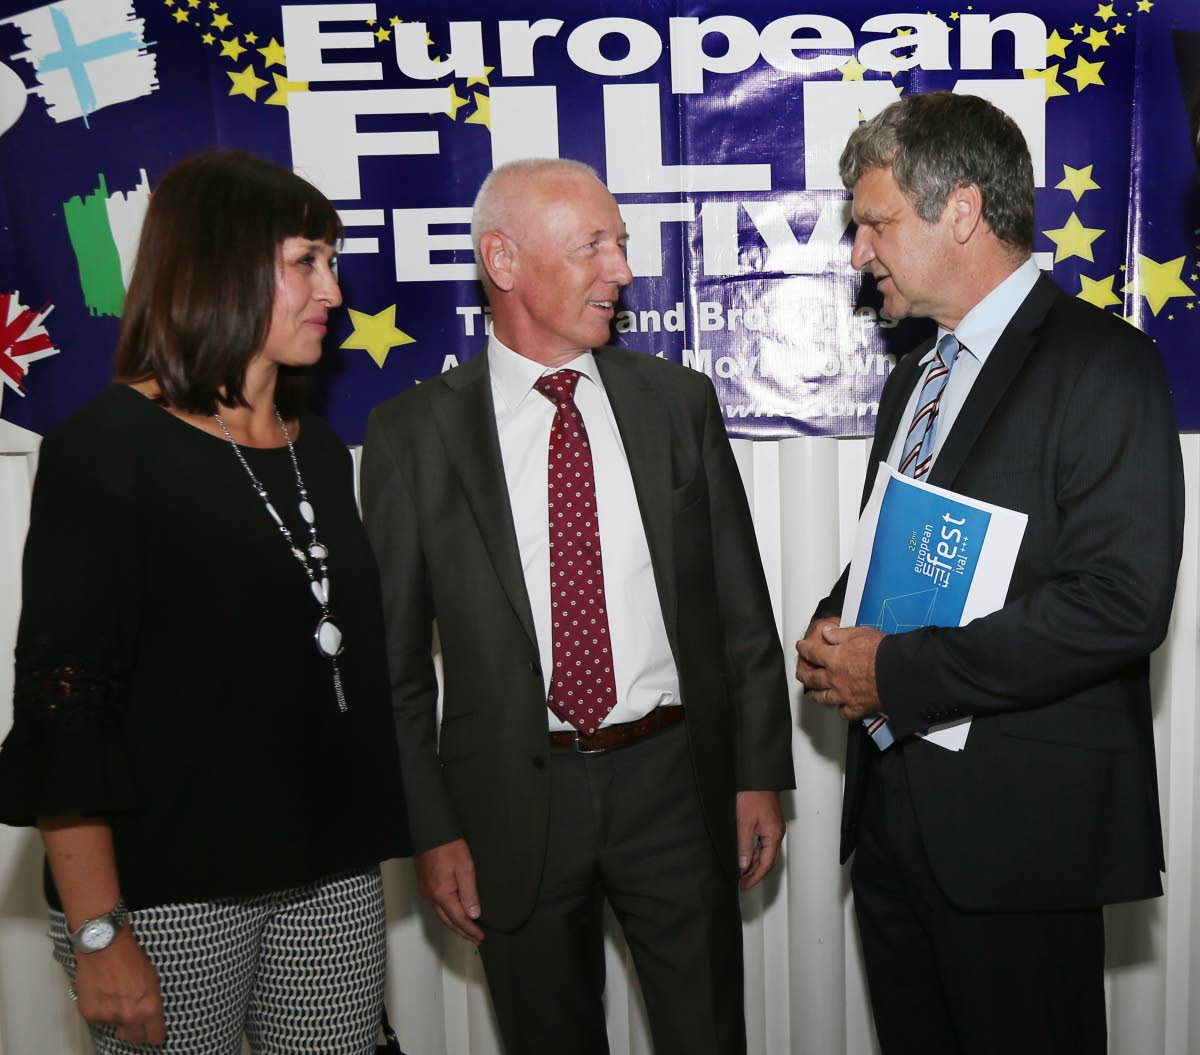 EU delegation to TT Europrean Film Festival 2018 launch and screening at UTT Campus Napa PoS. From right deputy German ambassador to TT Andreas Haack, EU Ambassador  Arend Biesebroek and Caroline Alcock dep British high commissioner to TT